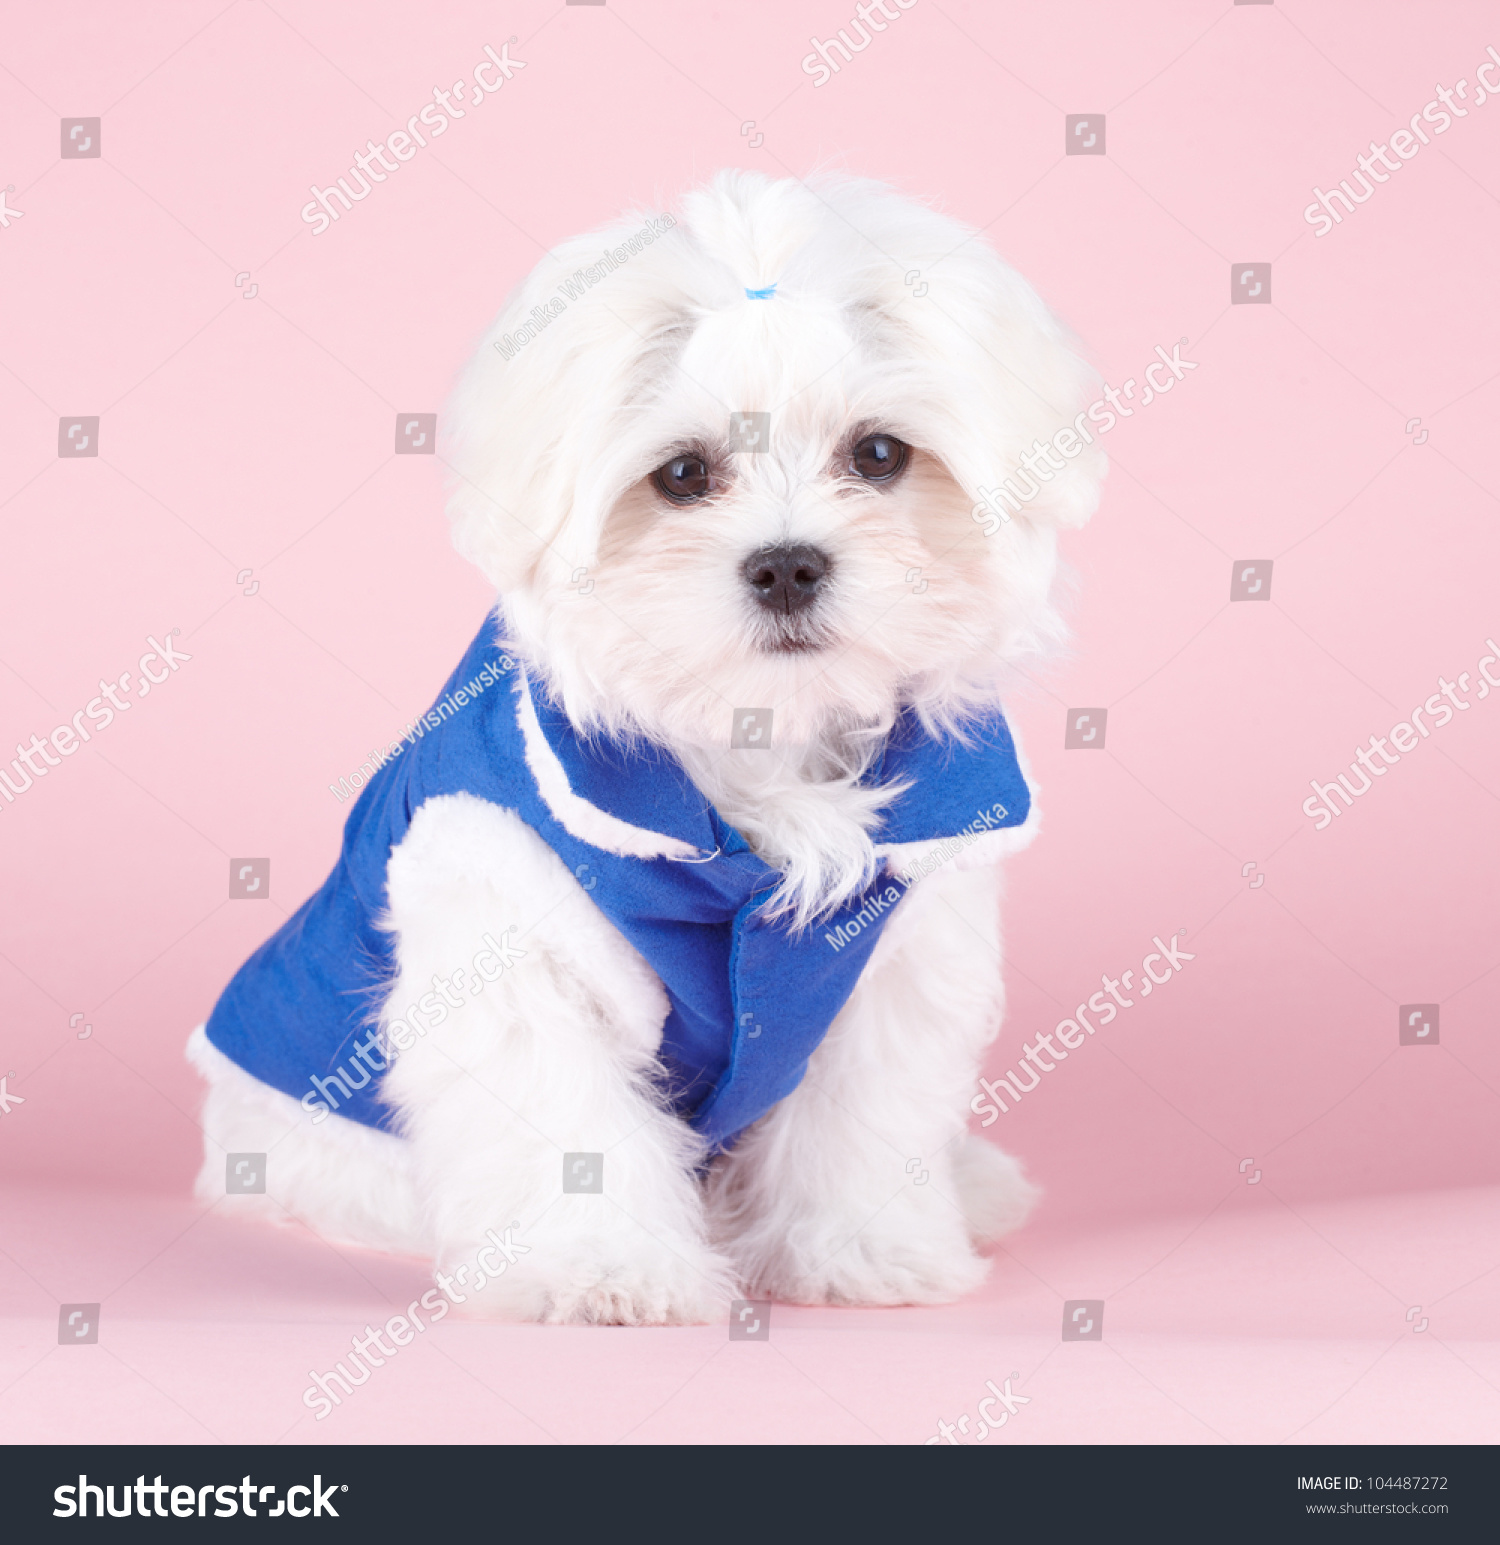 Sweet Fluffy: Cute Fluffy Young Maltese Puppy Sweet Stock Photo